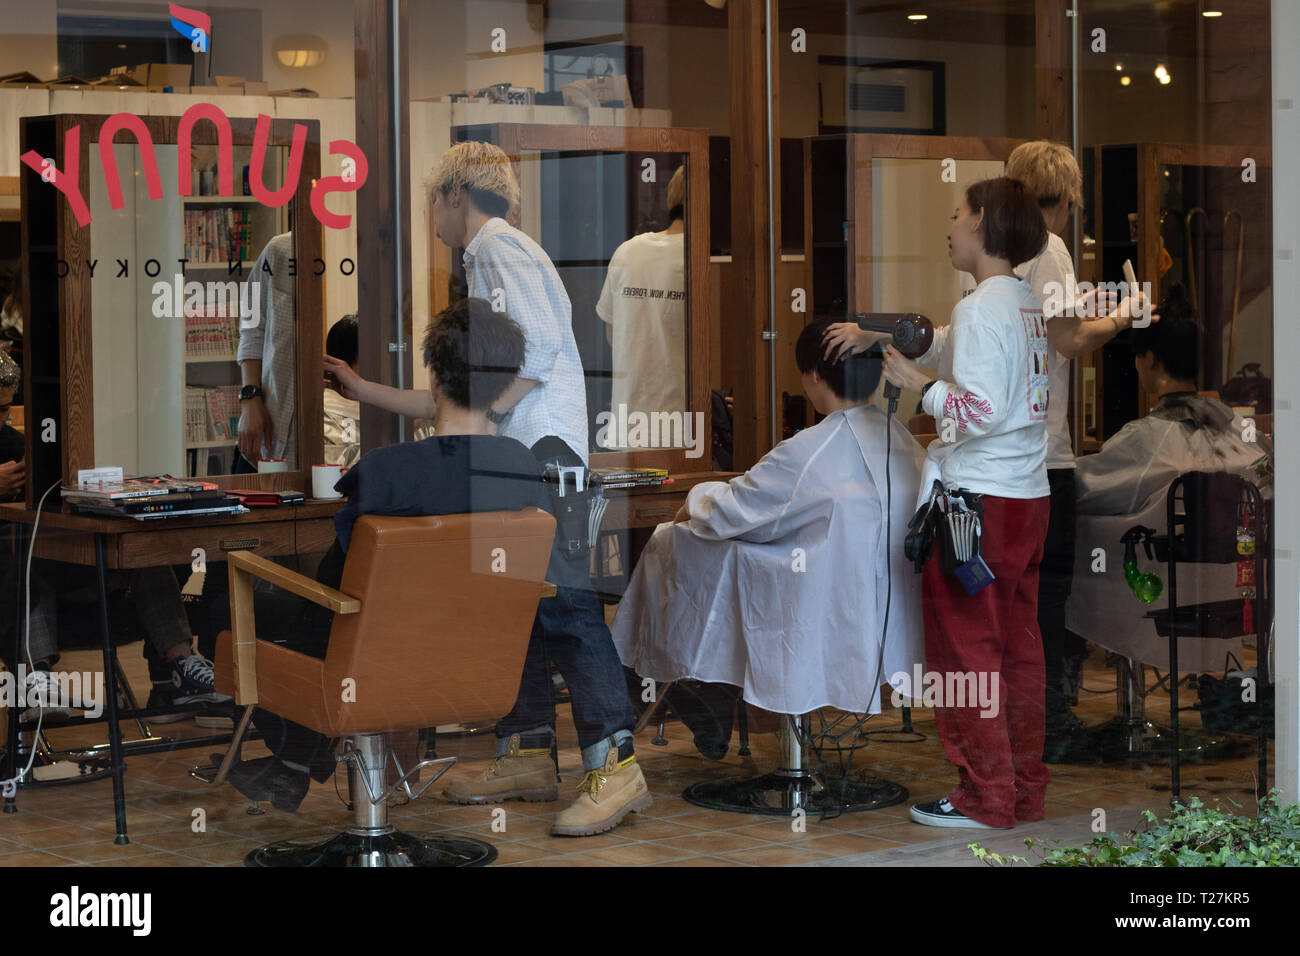 As much as the streets around were maximally crowded, the hair salon was busy with people getting fashionably haircuts. Stock Photo